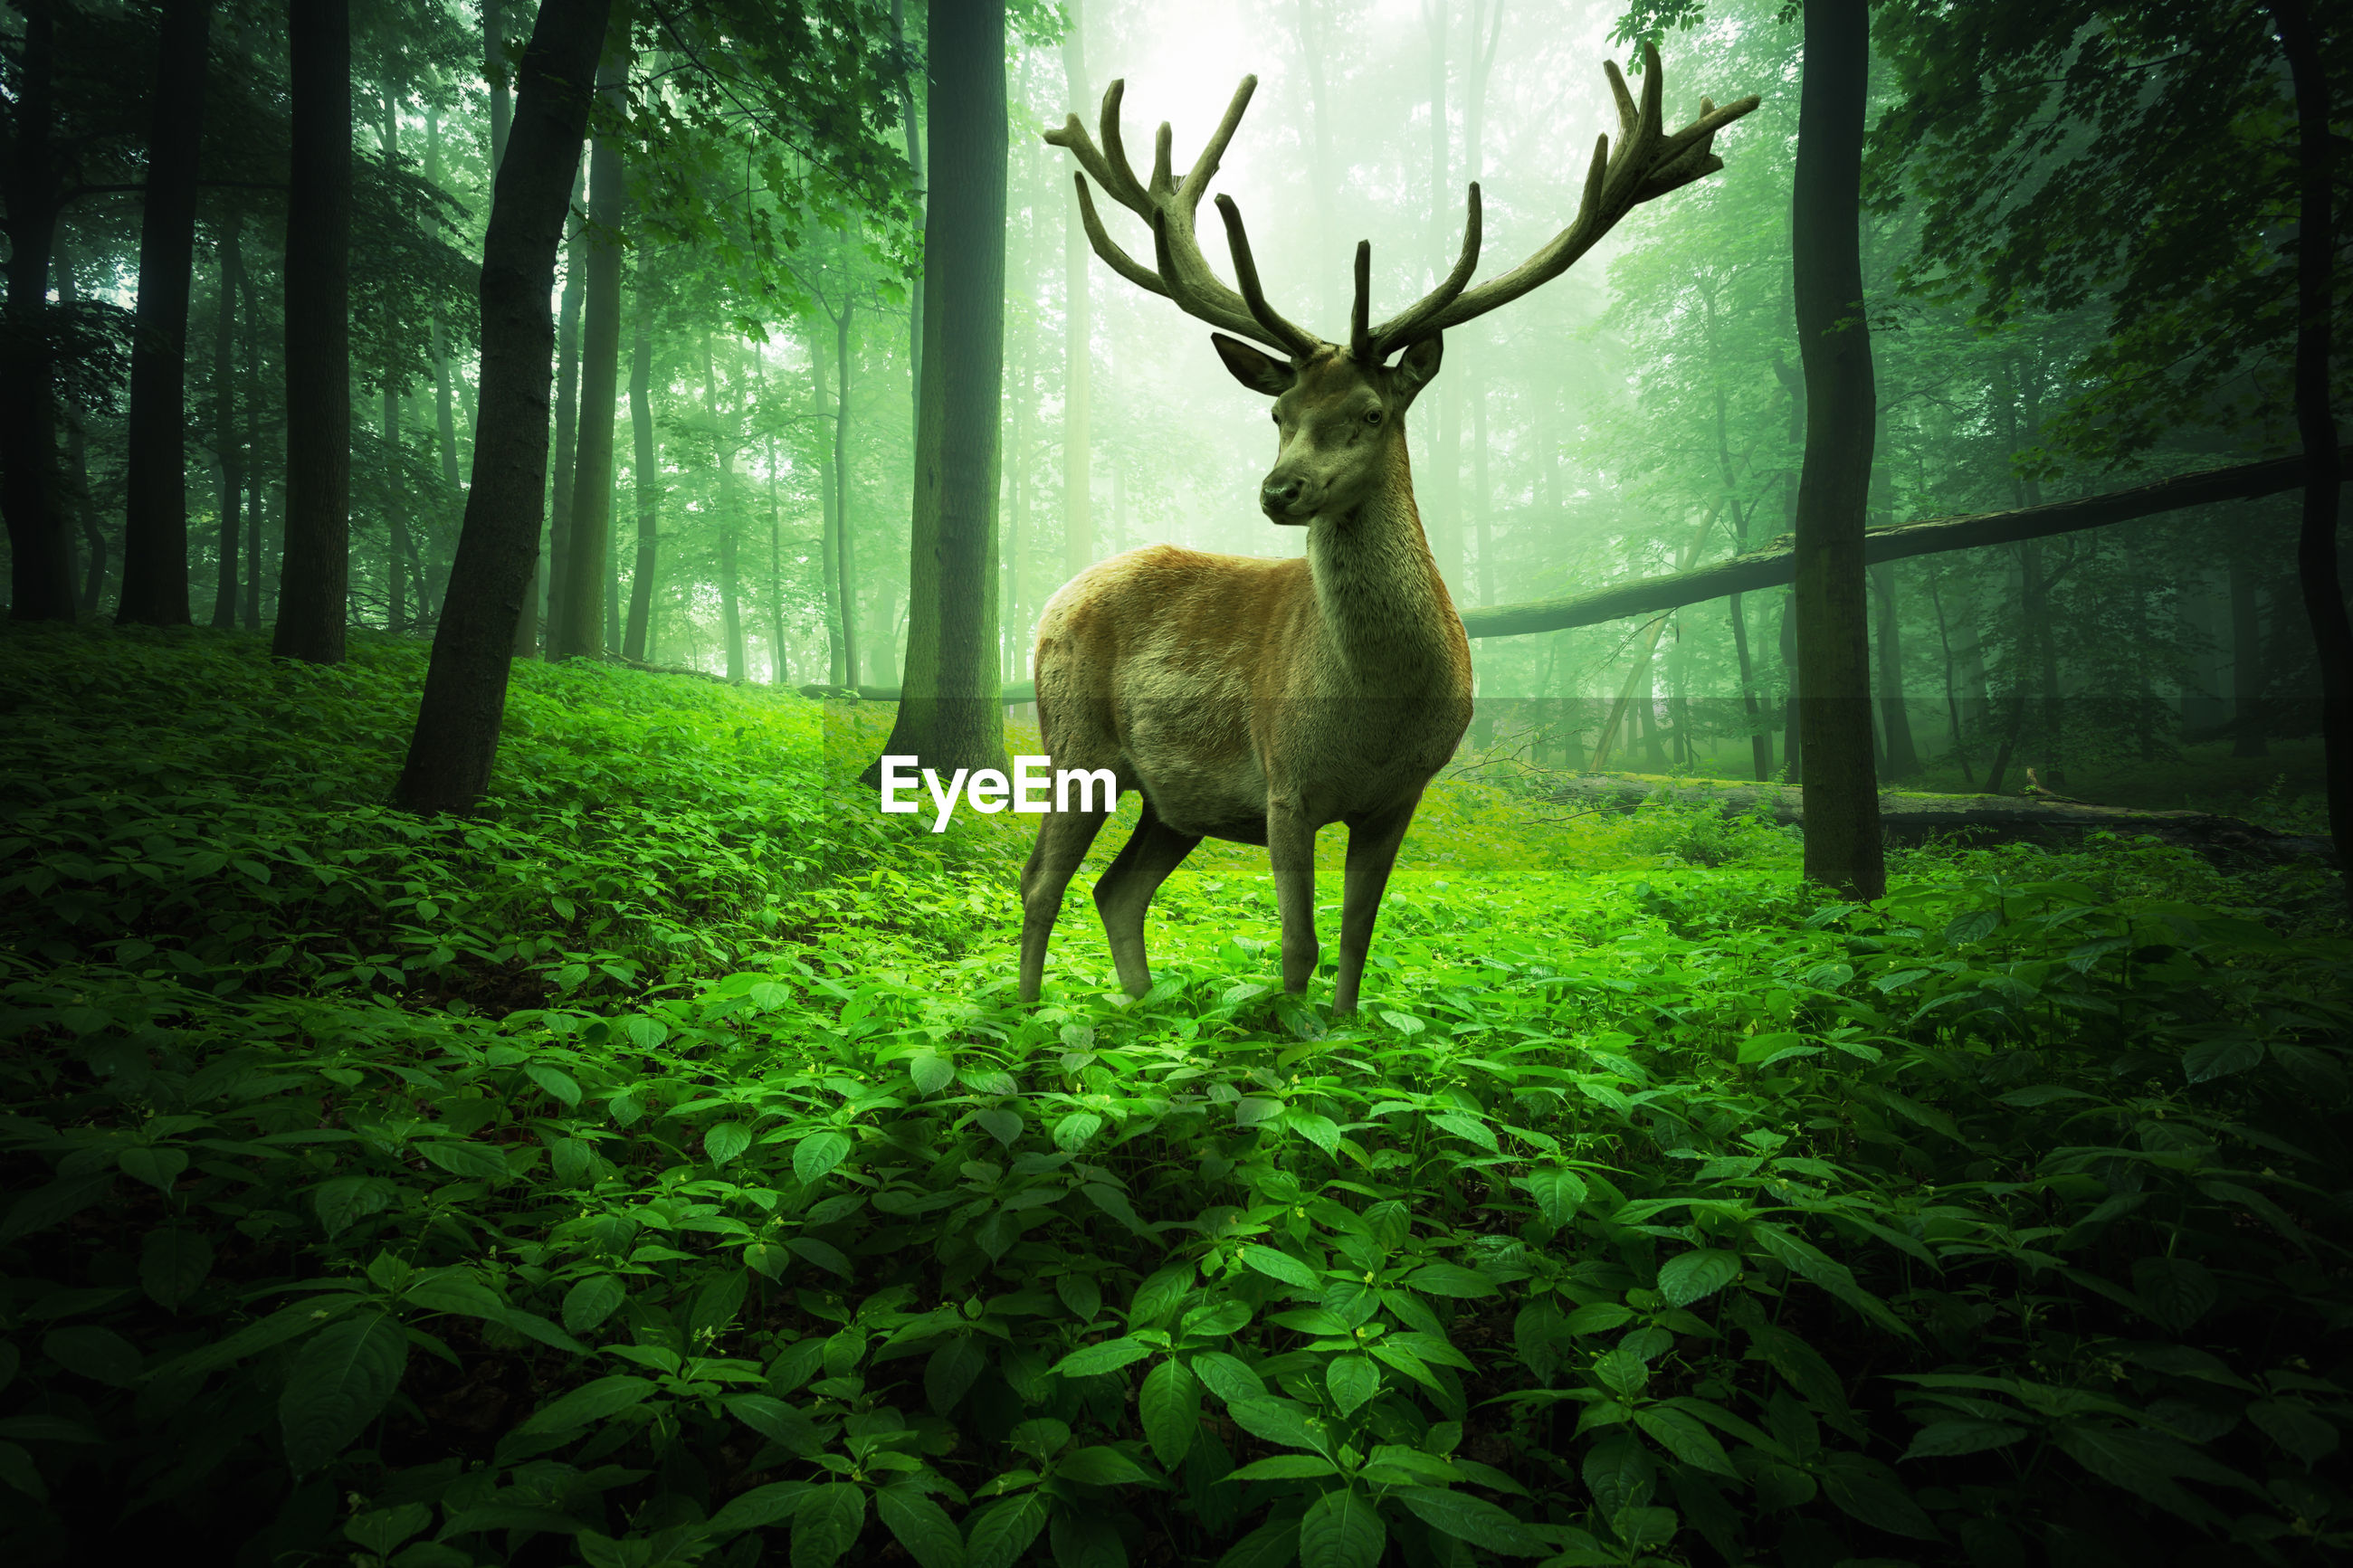 Big deer stands in a magical forest